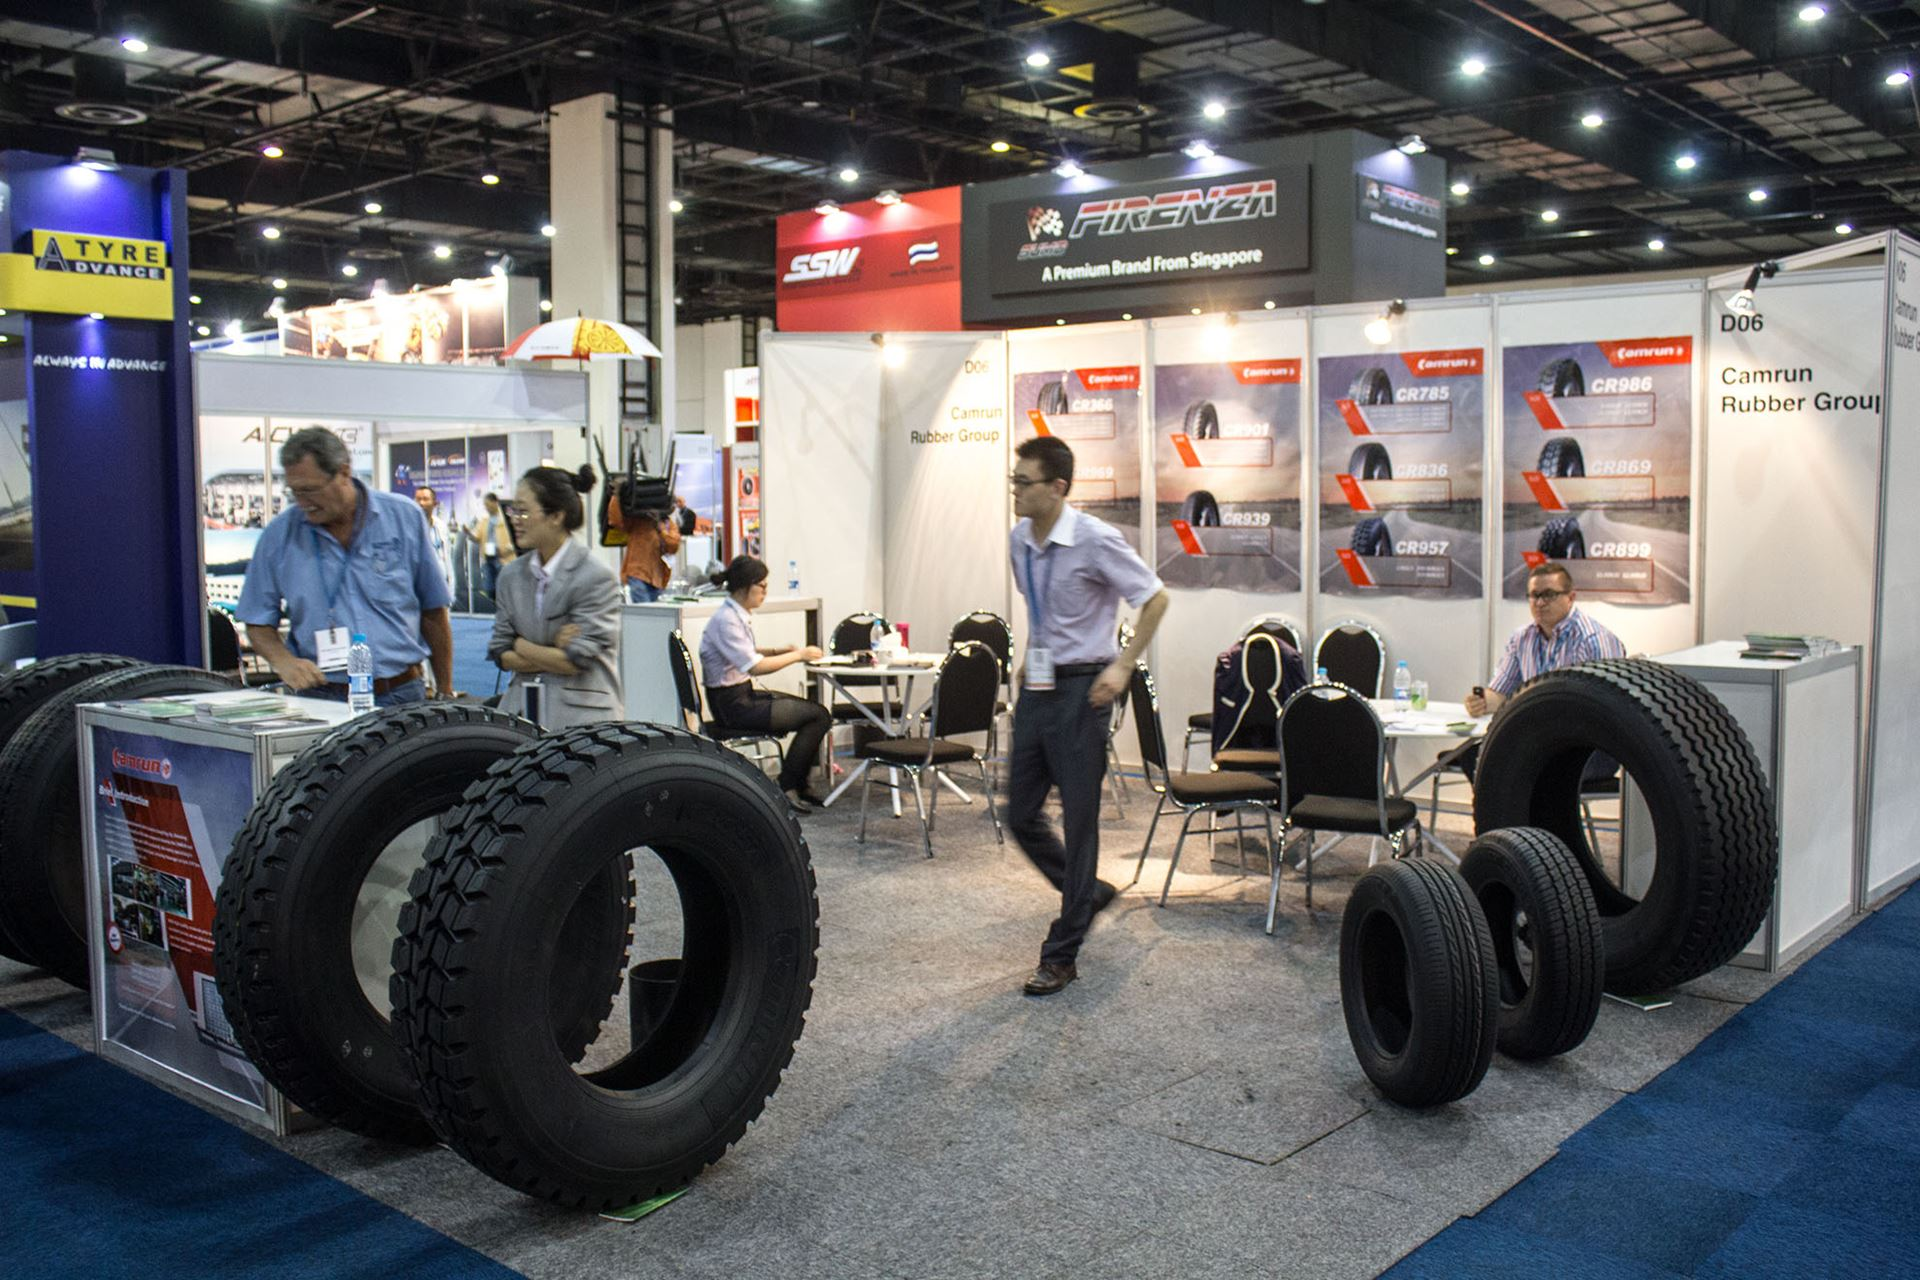 Tyre-Expo-South-Africa-2014-Firenza